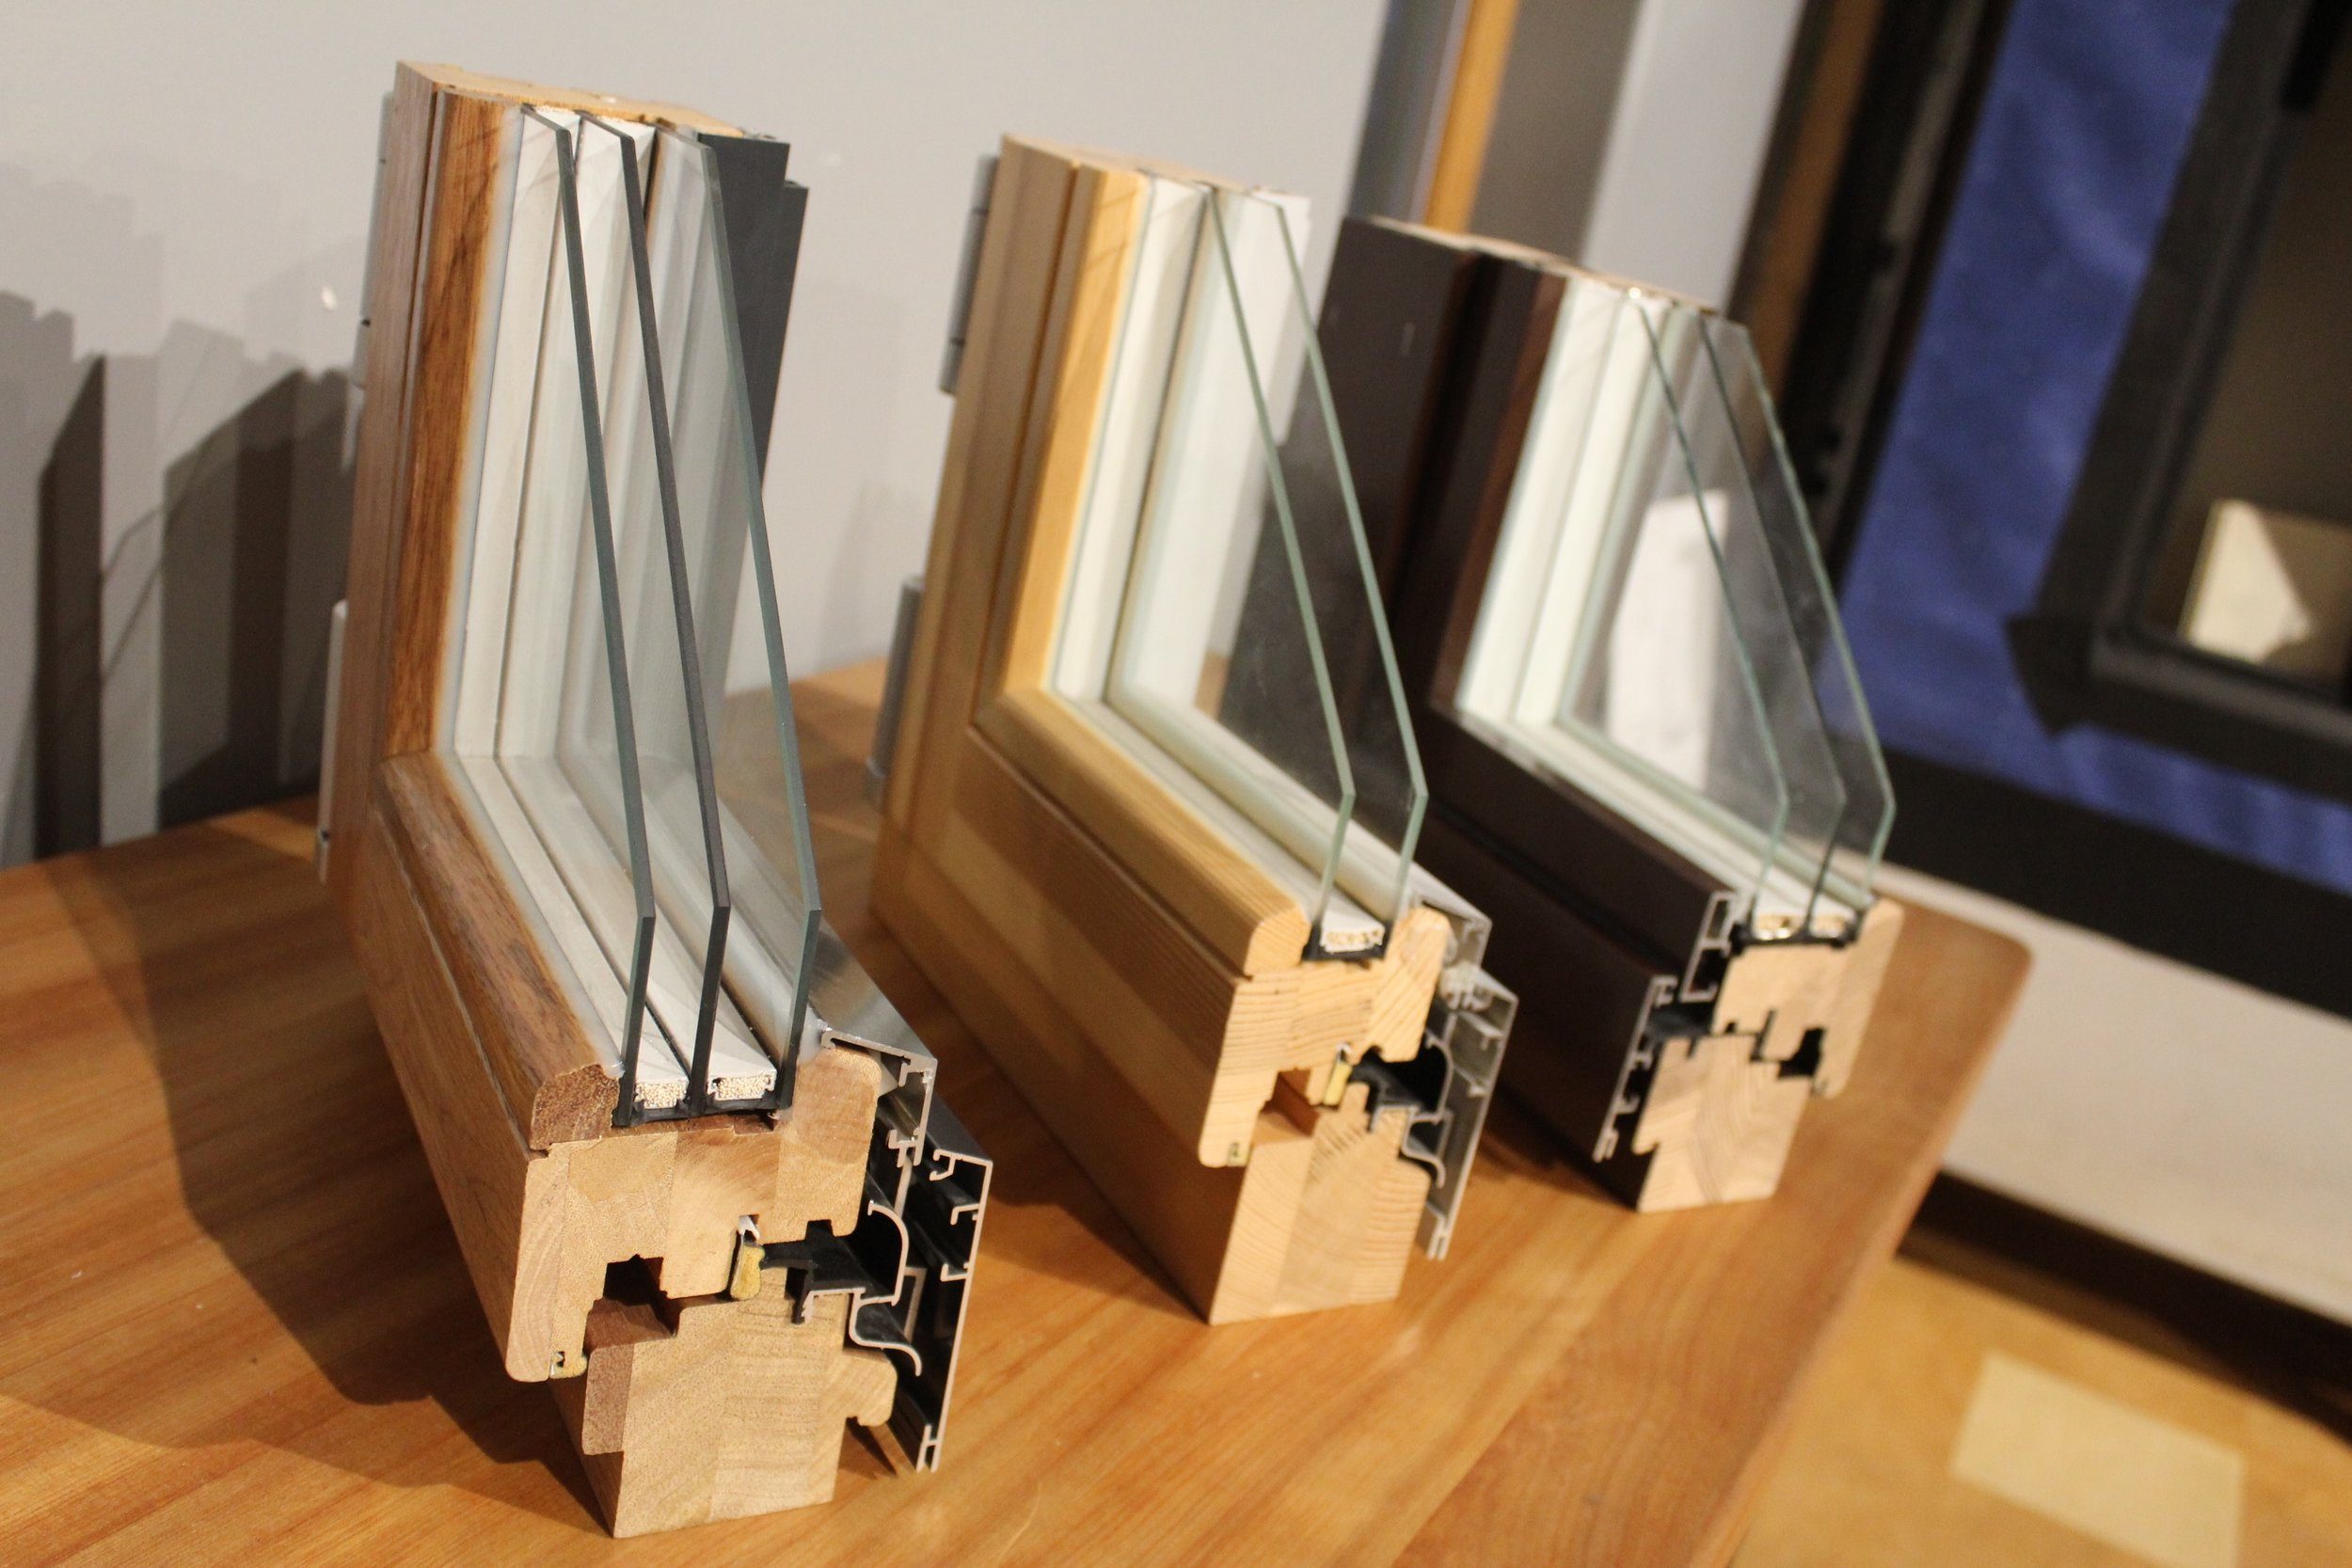 A cross-section of triple-paned windows available through Performance Building Supply.